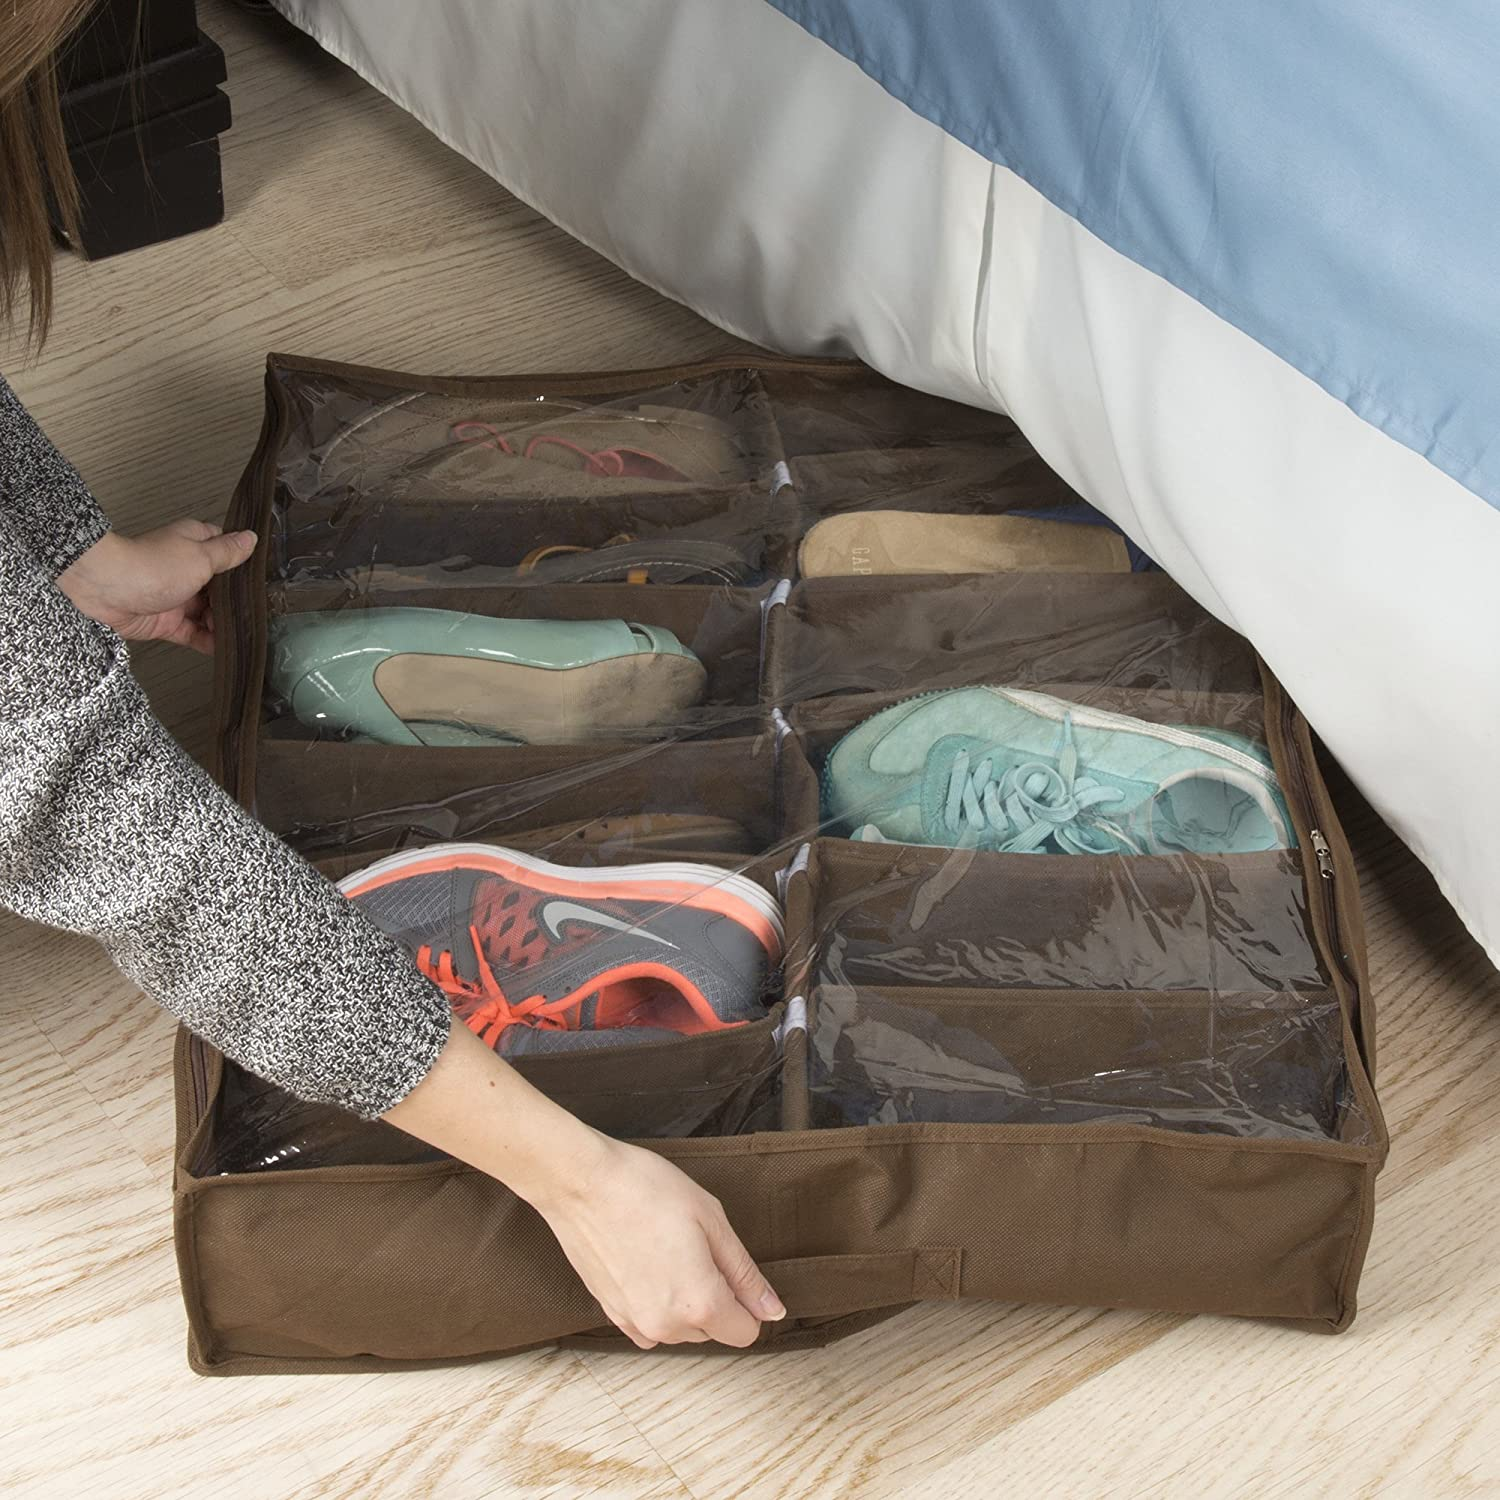 Under Bed Storage Shoe Organizer Bag with Clear Plastic Zippered Cover, Stores 12 Pairs of Shoes by Everyday Home (Brown) 80-90700